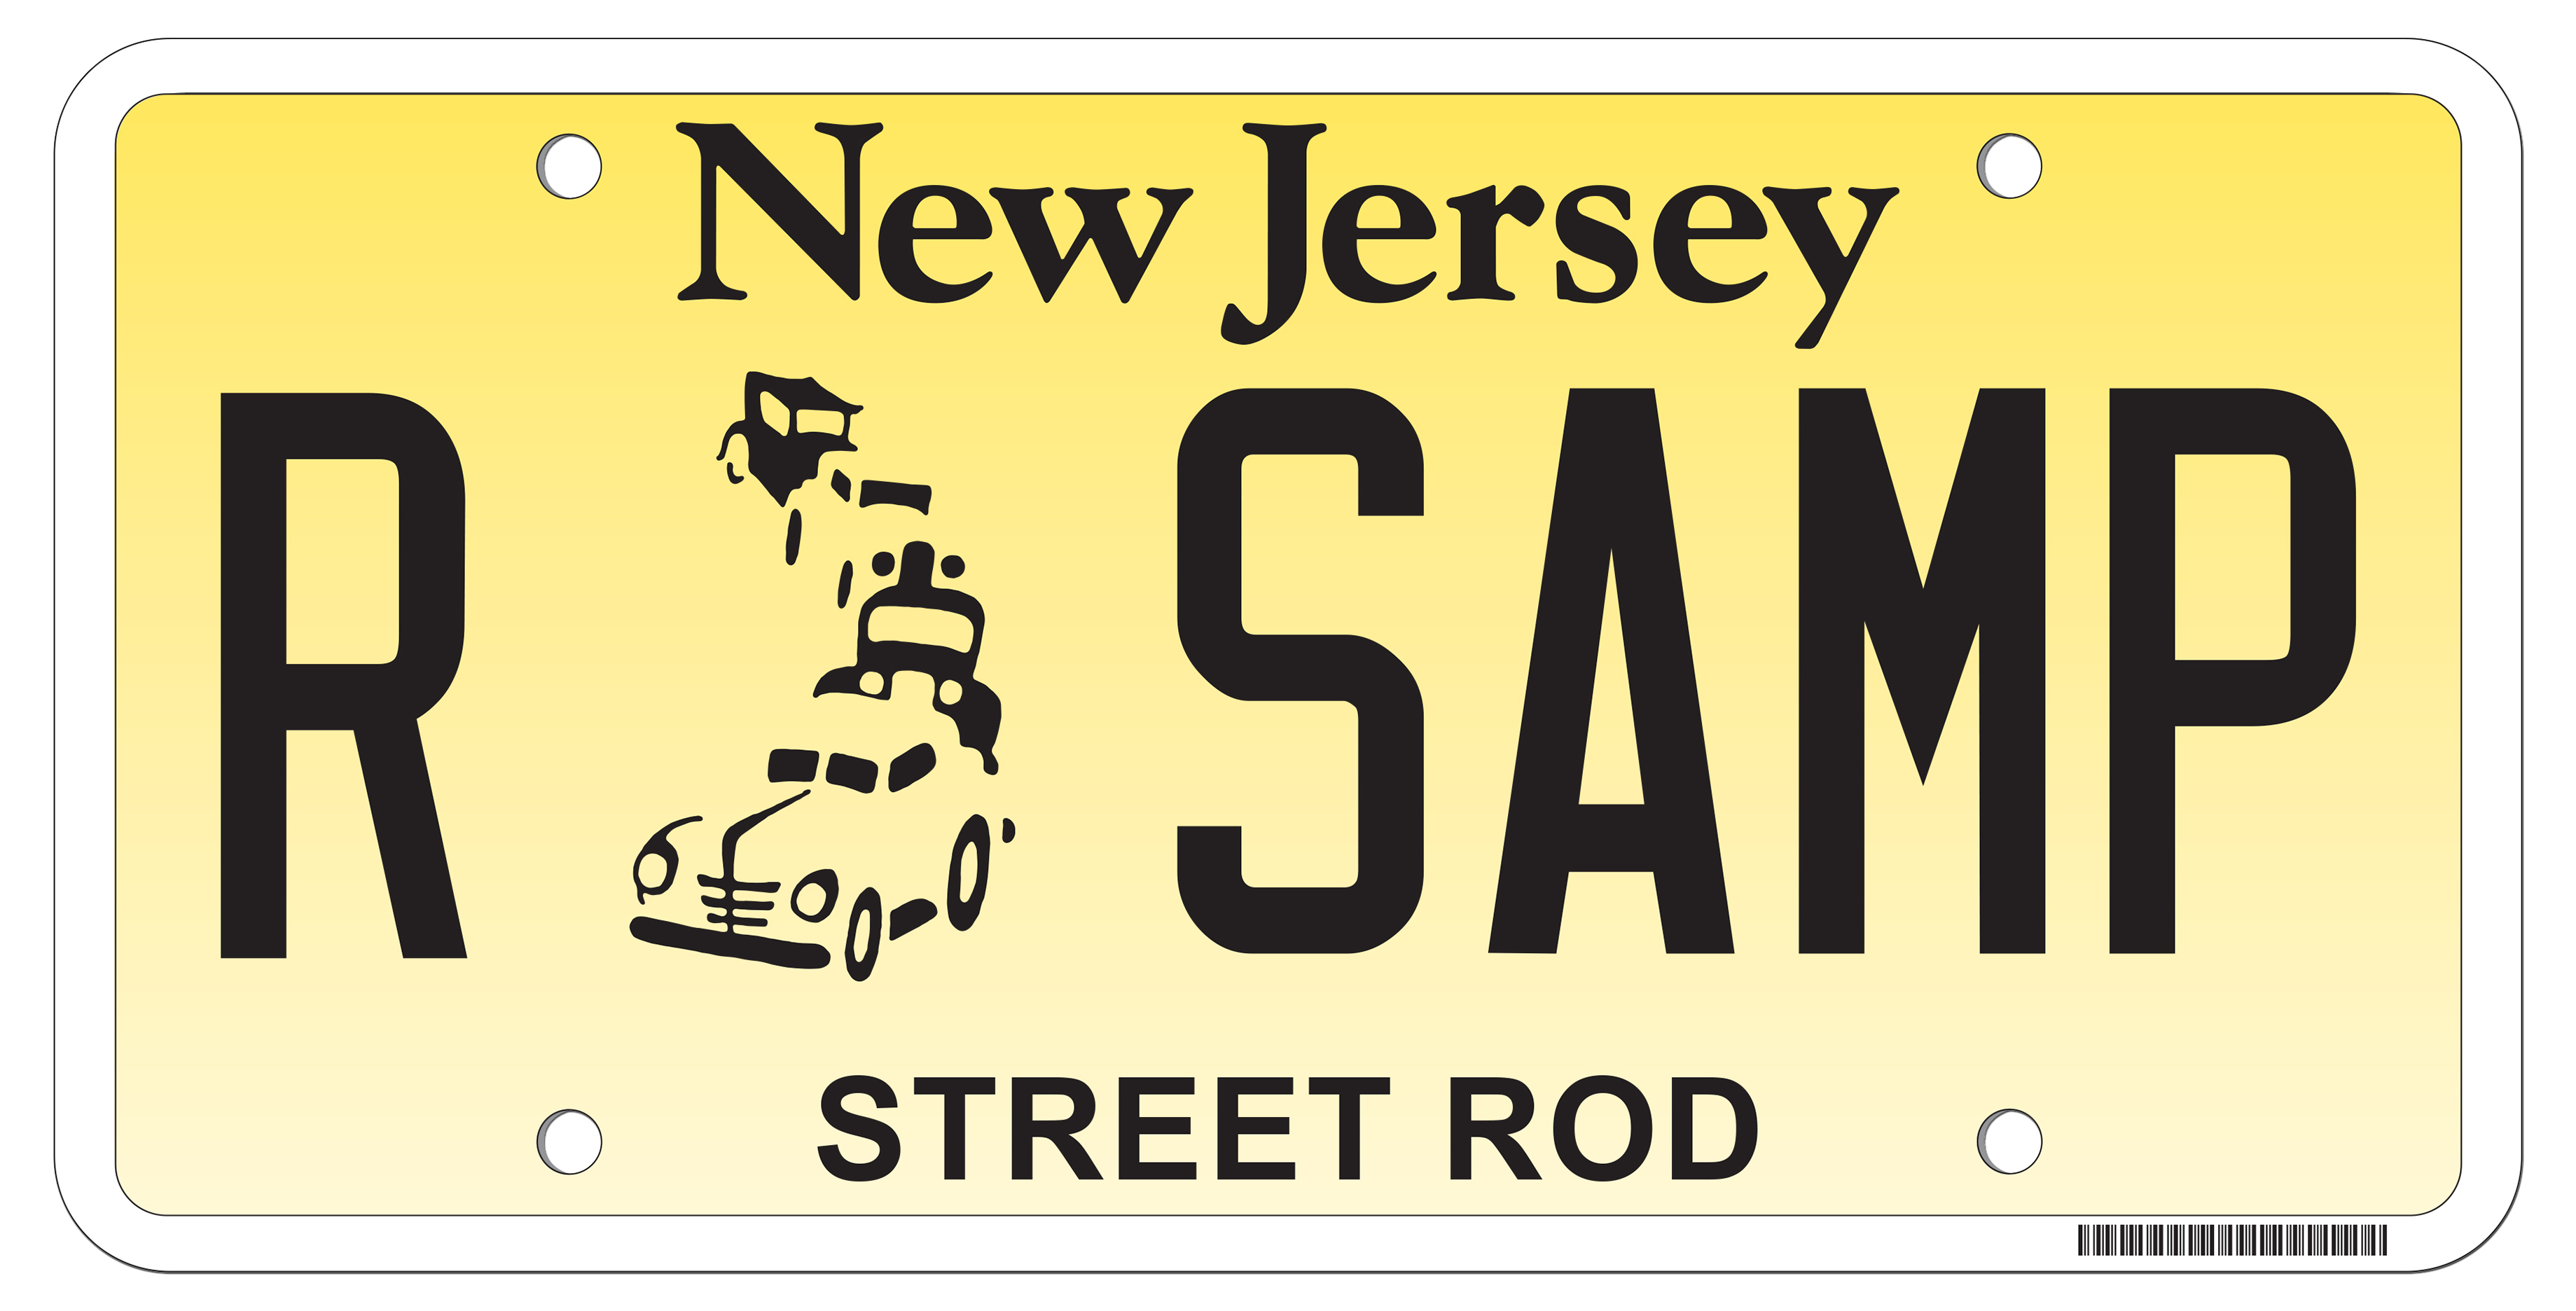 Historic registration guide with s&le photos  sc 1 st  State of NJ & New Jersey Motor Vehicle Commission - Historic and Street Rod